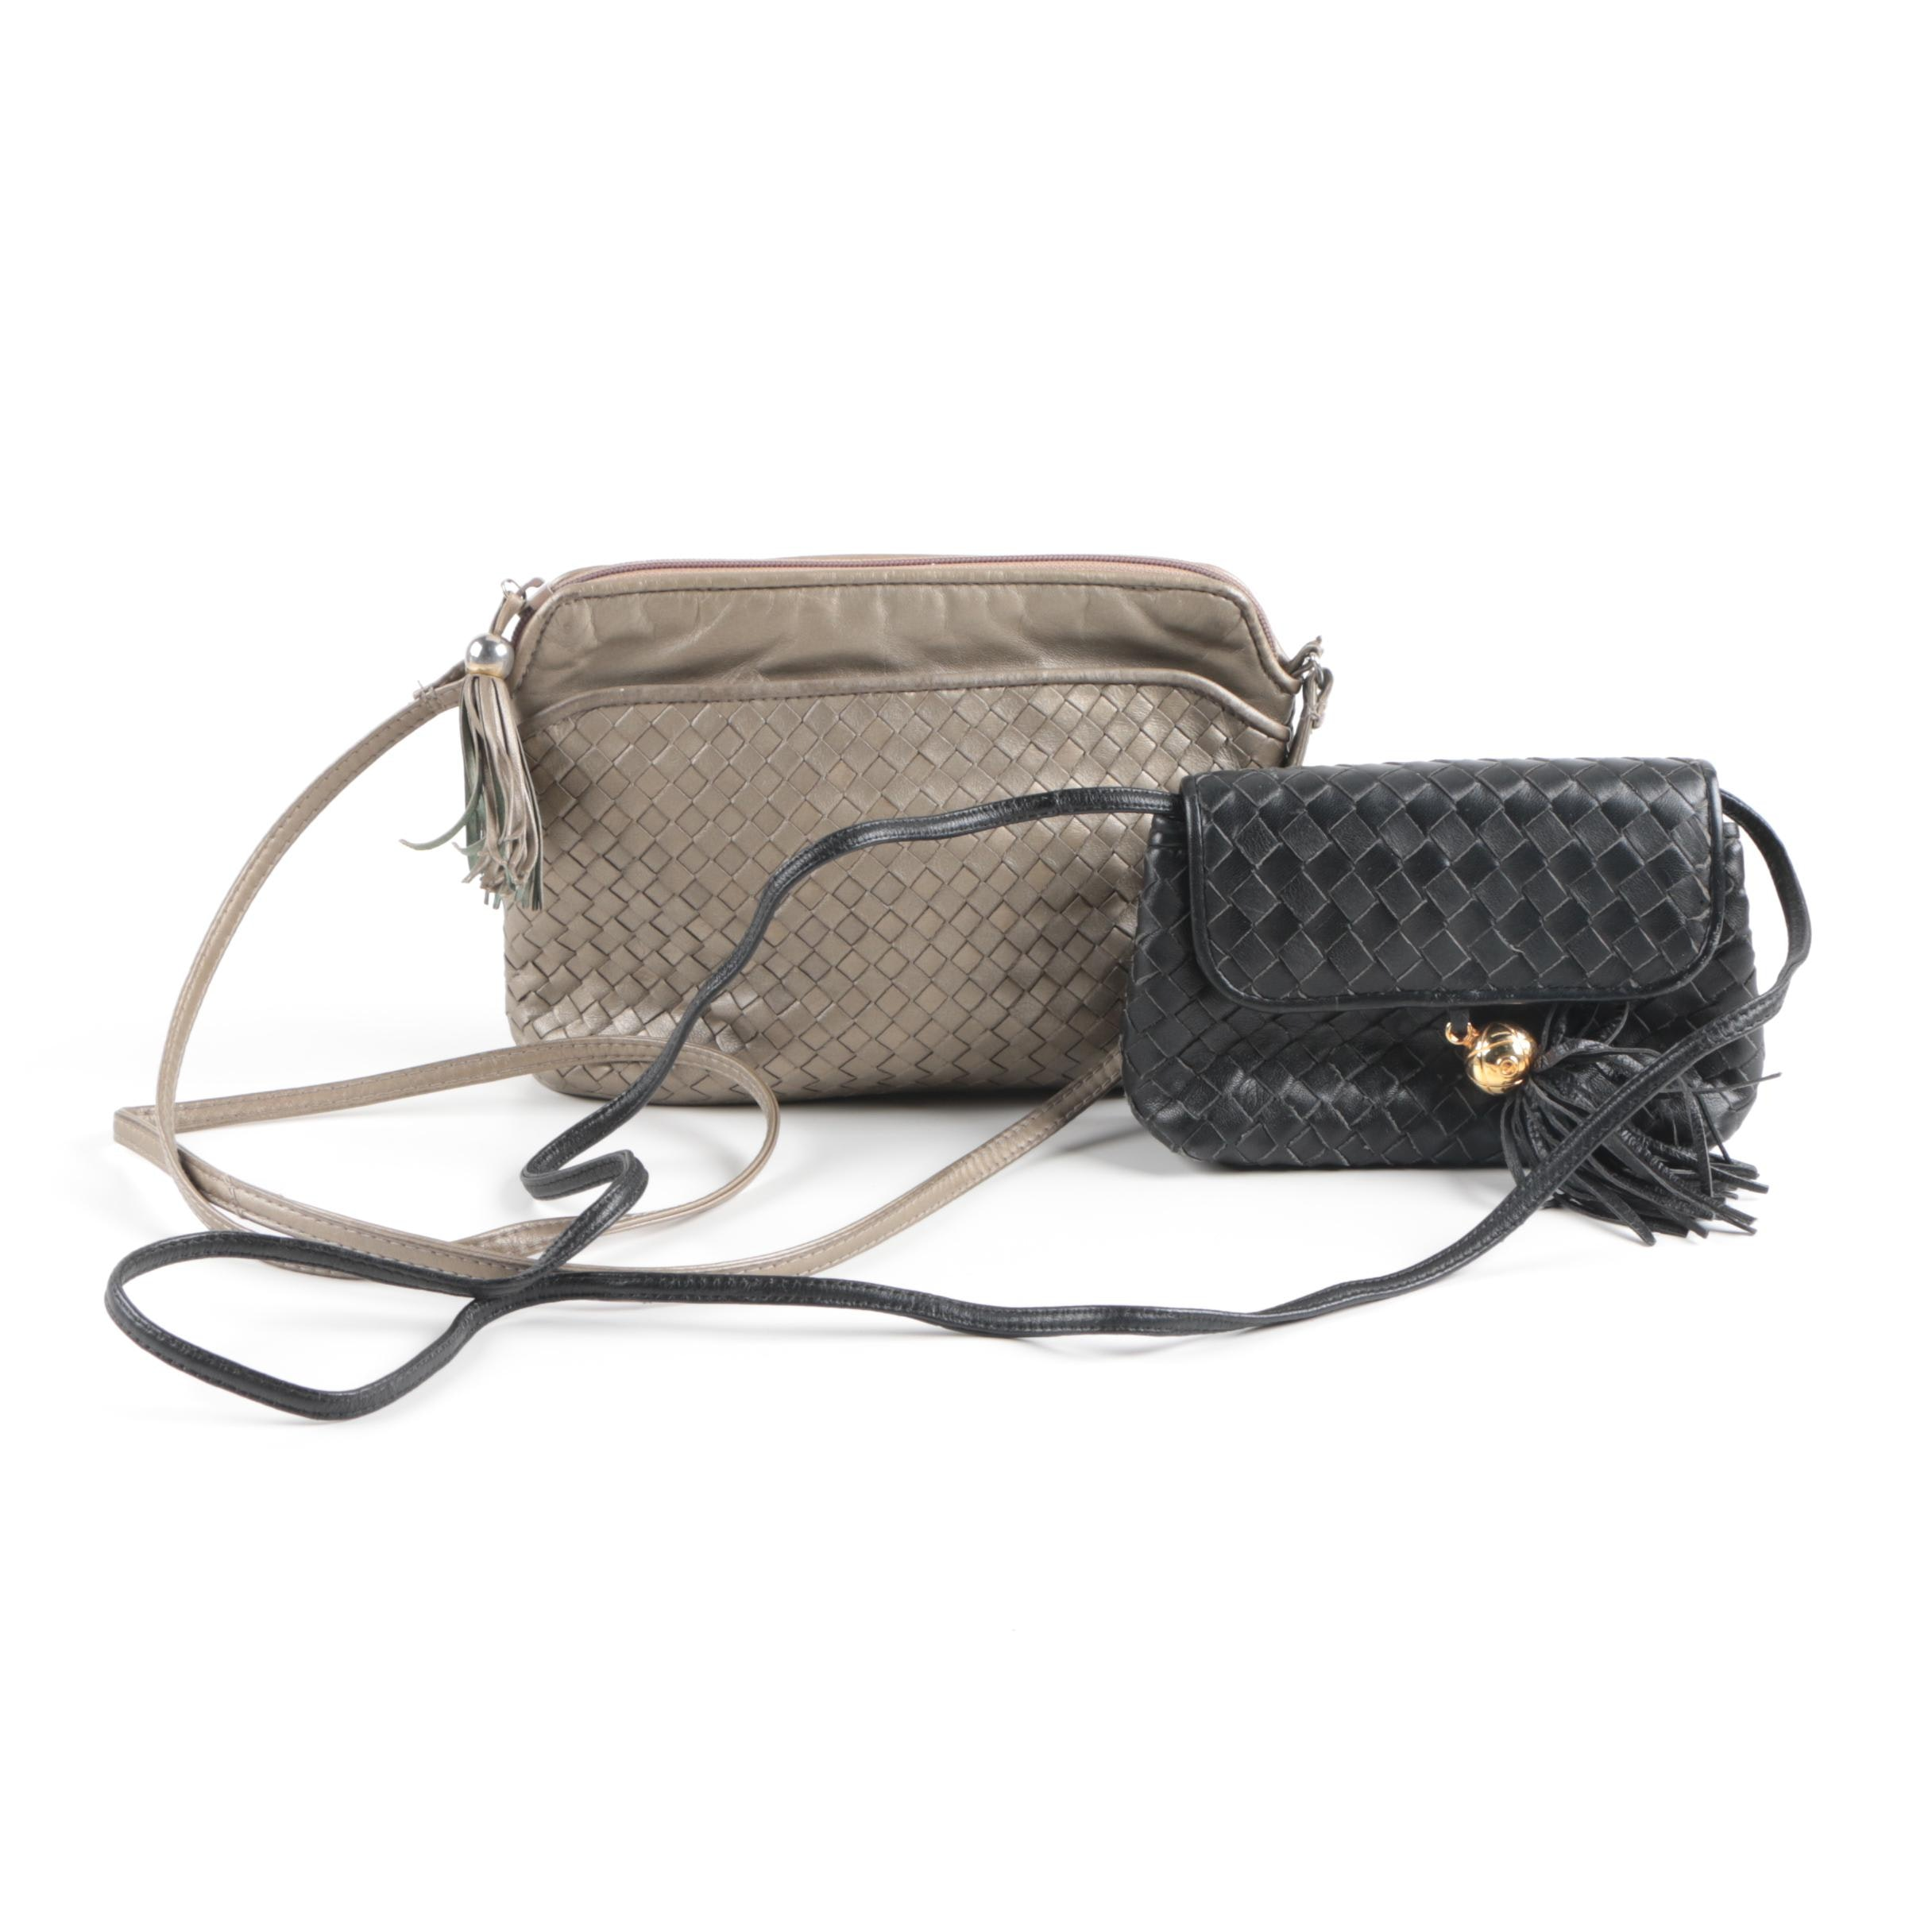 Vintage Woven Leather Handbags with Tassels Including Ganson